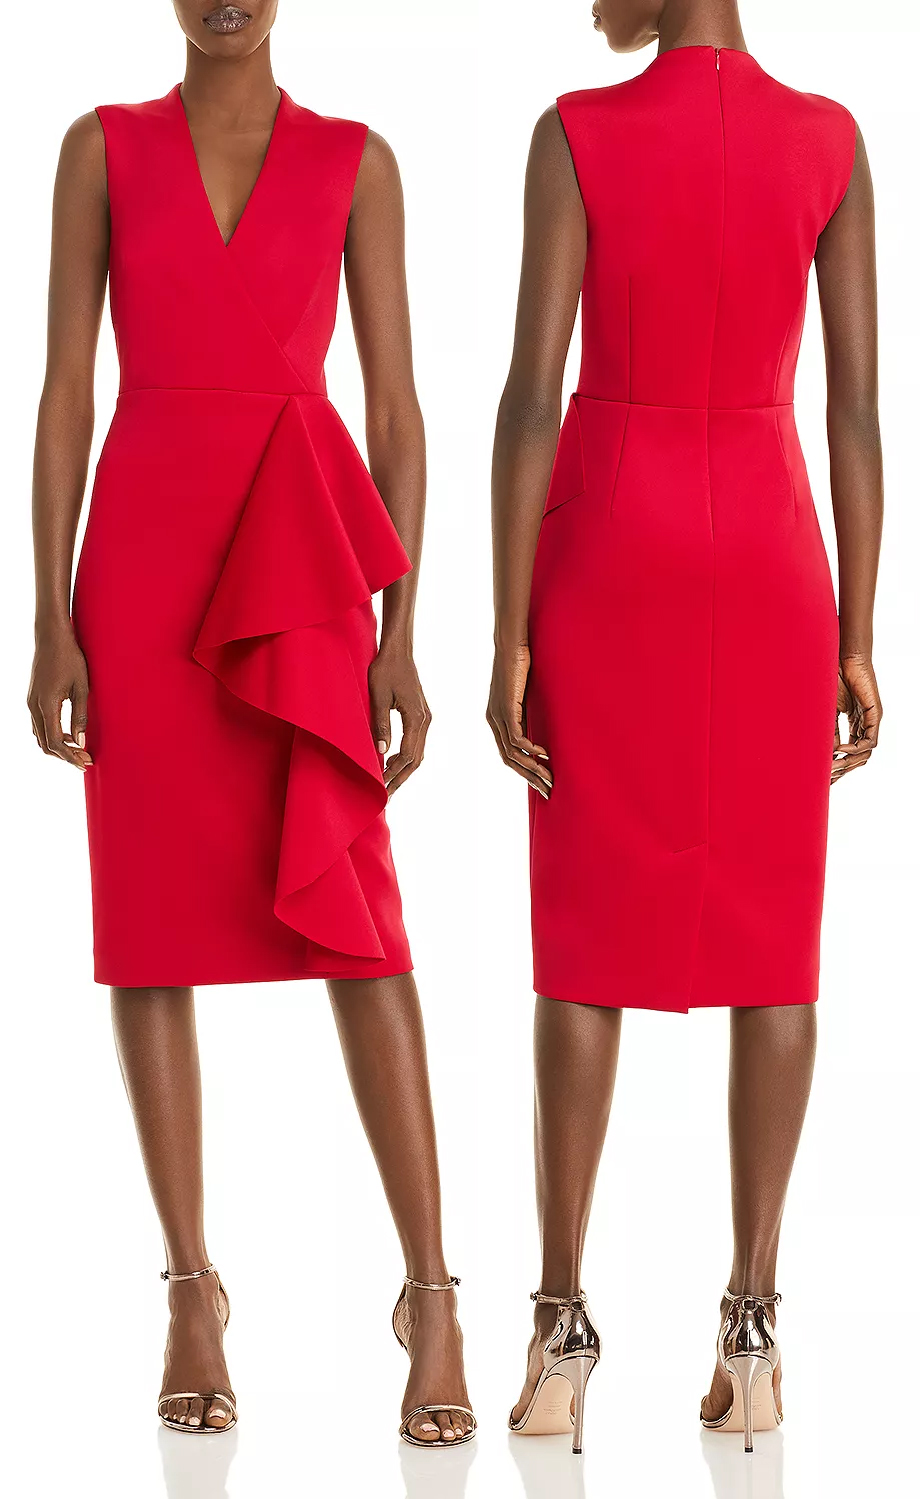 Red Dress for the Kentucky Derby 2021. Dress for the Kentucky Derby 2021. Fun Kentucky Derby outfits 2021. Summer Wedding guest outfits 2021. Outfit ideas for Kentucky Derby Party 2021. What to wear for a Kentucky Derby Party 2021.